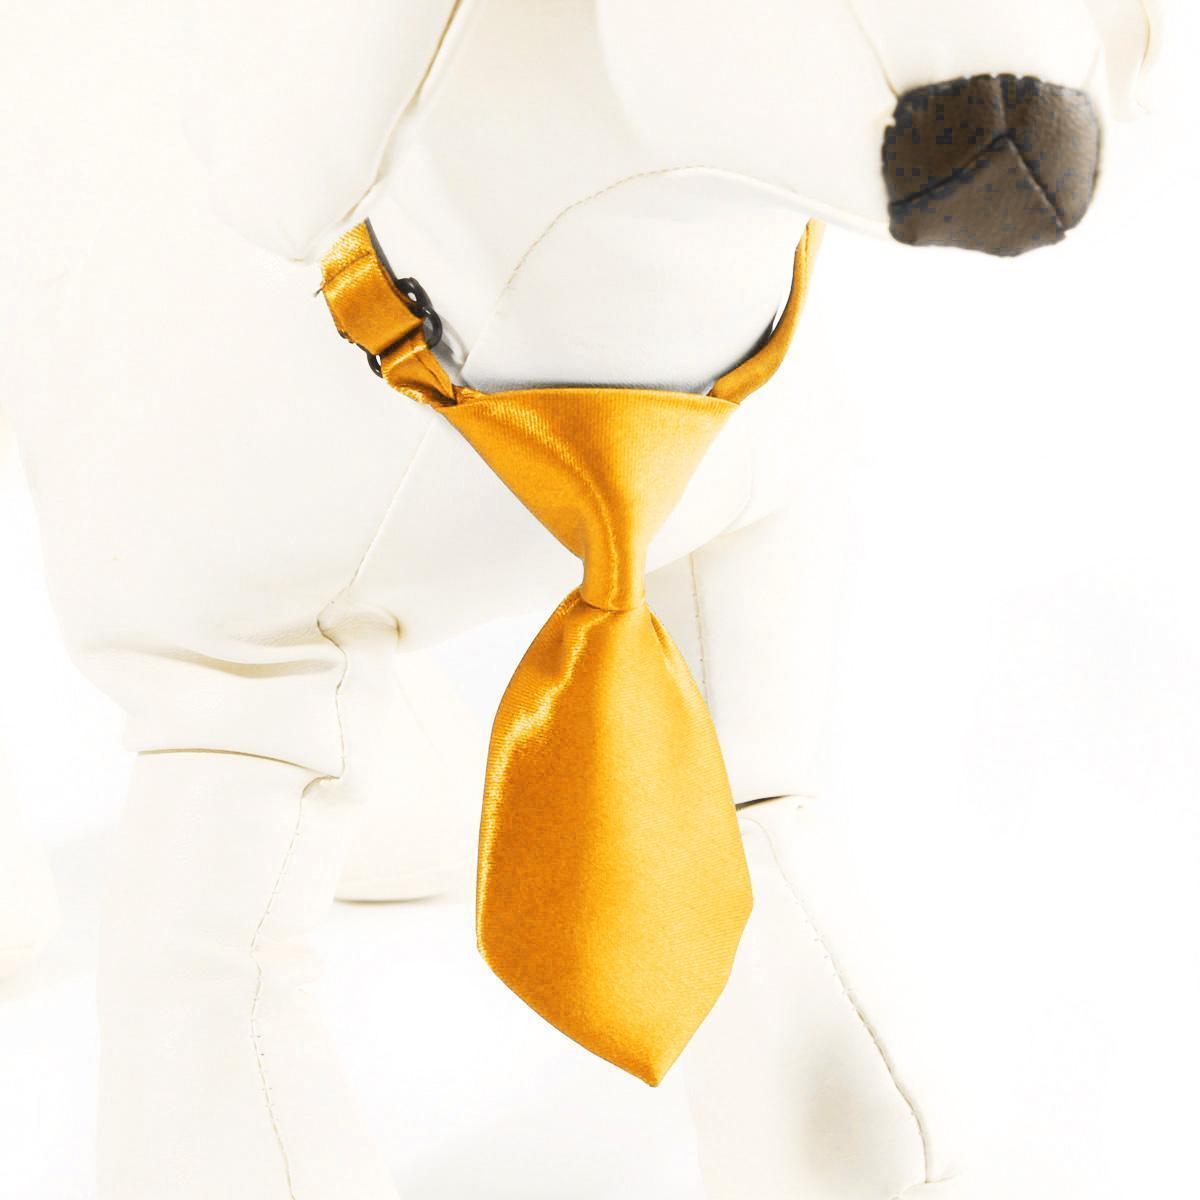 217fb873785ddb Lovely Adjustable Grooming Necktie Adorable Bow Tie For Dog Cat Puppy  Kitten Pet Yellow